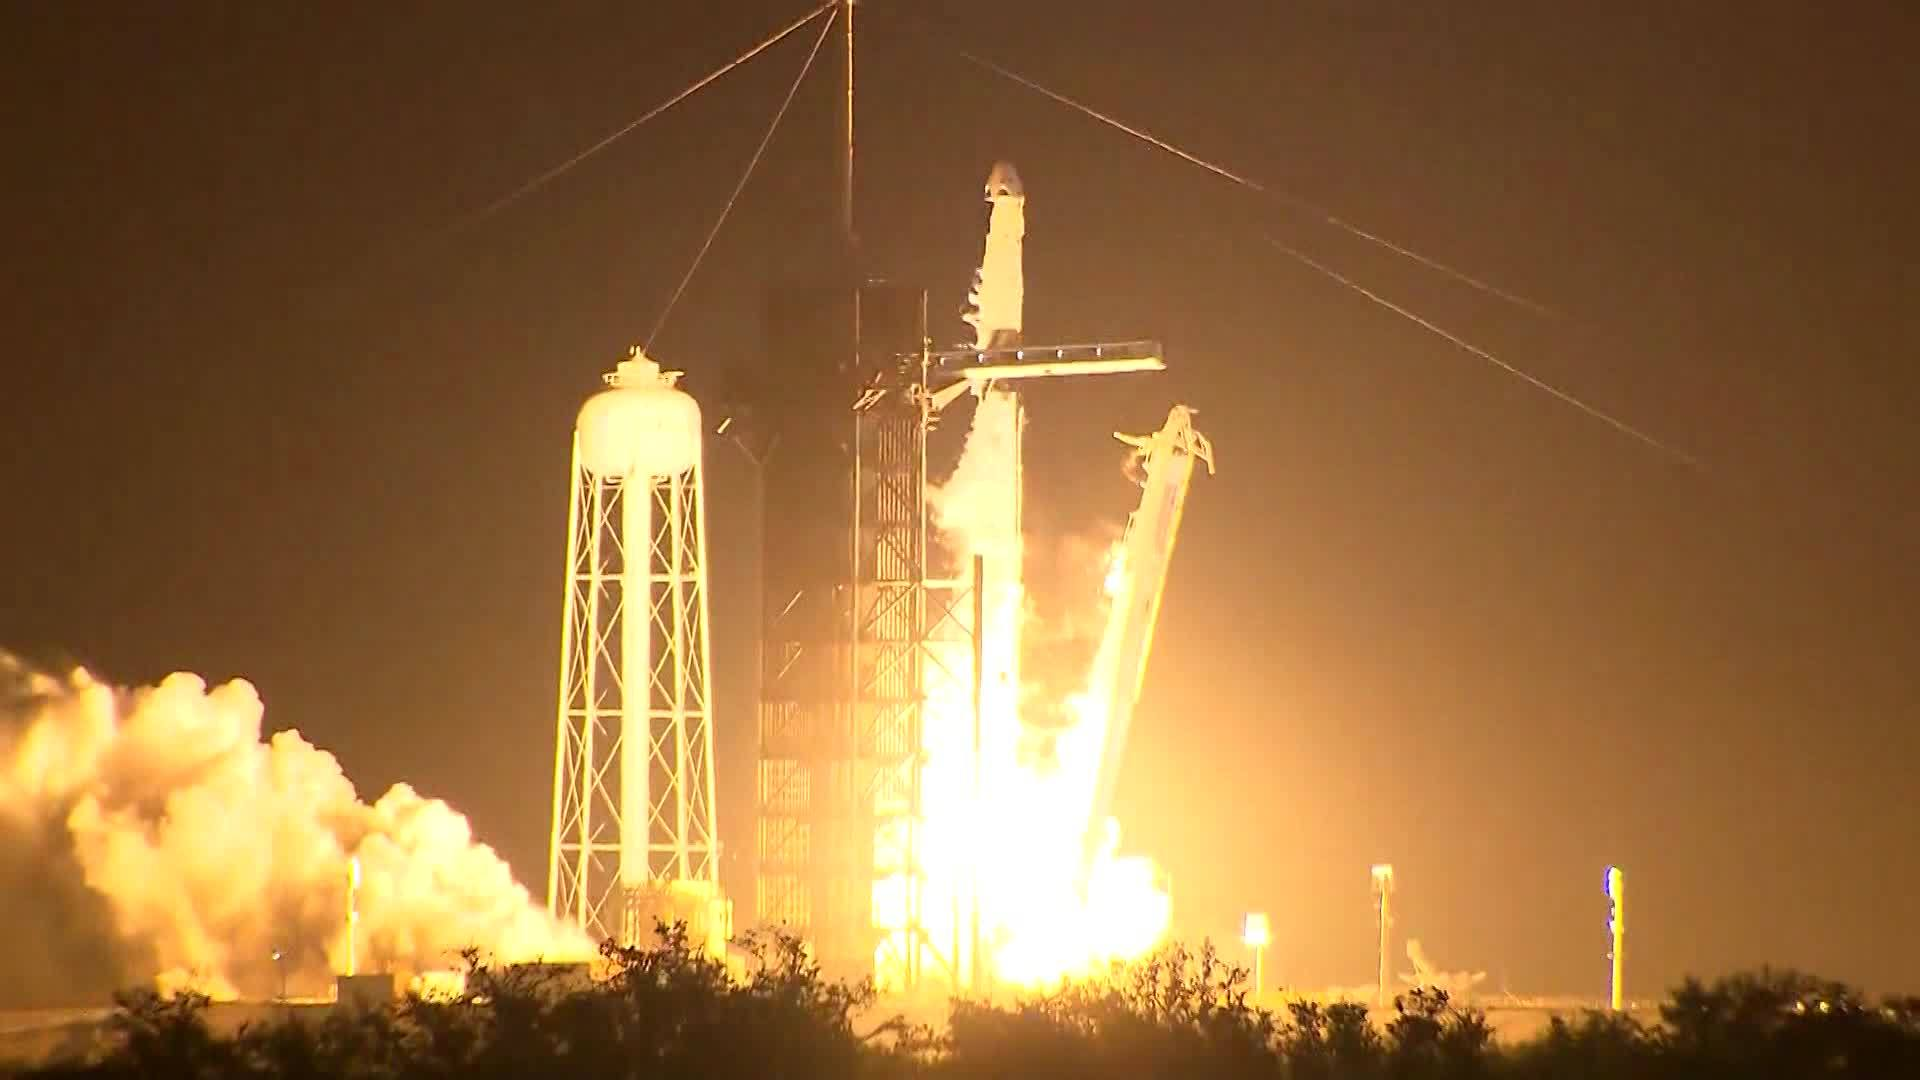 America's newest capsule for astronauts rocketed Saturday toward the International Space Station on a high-stakes test flight by SpaceX.